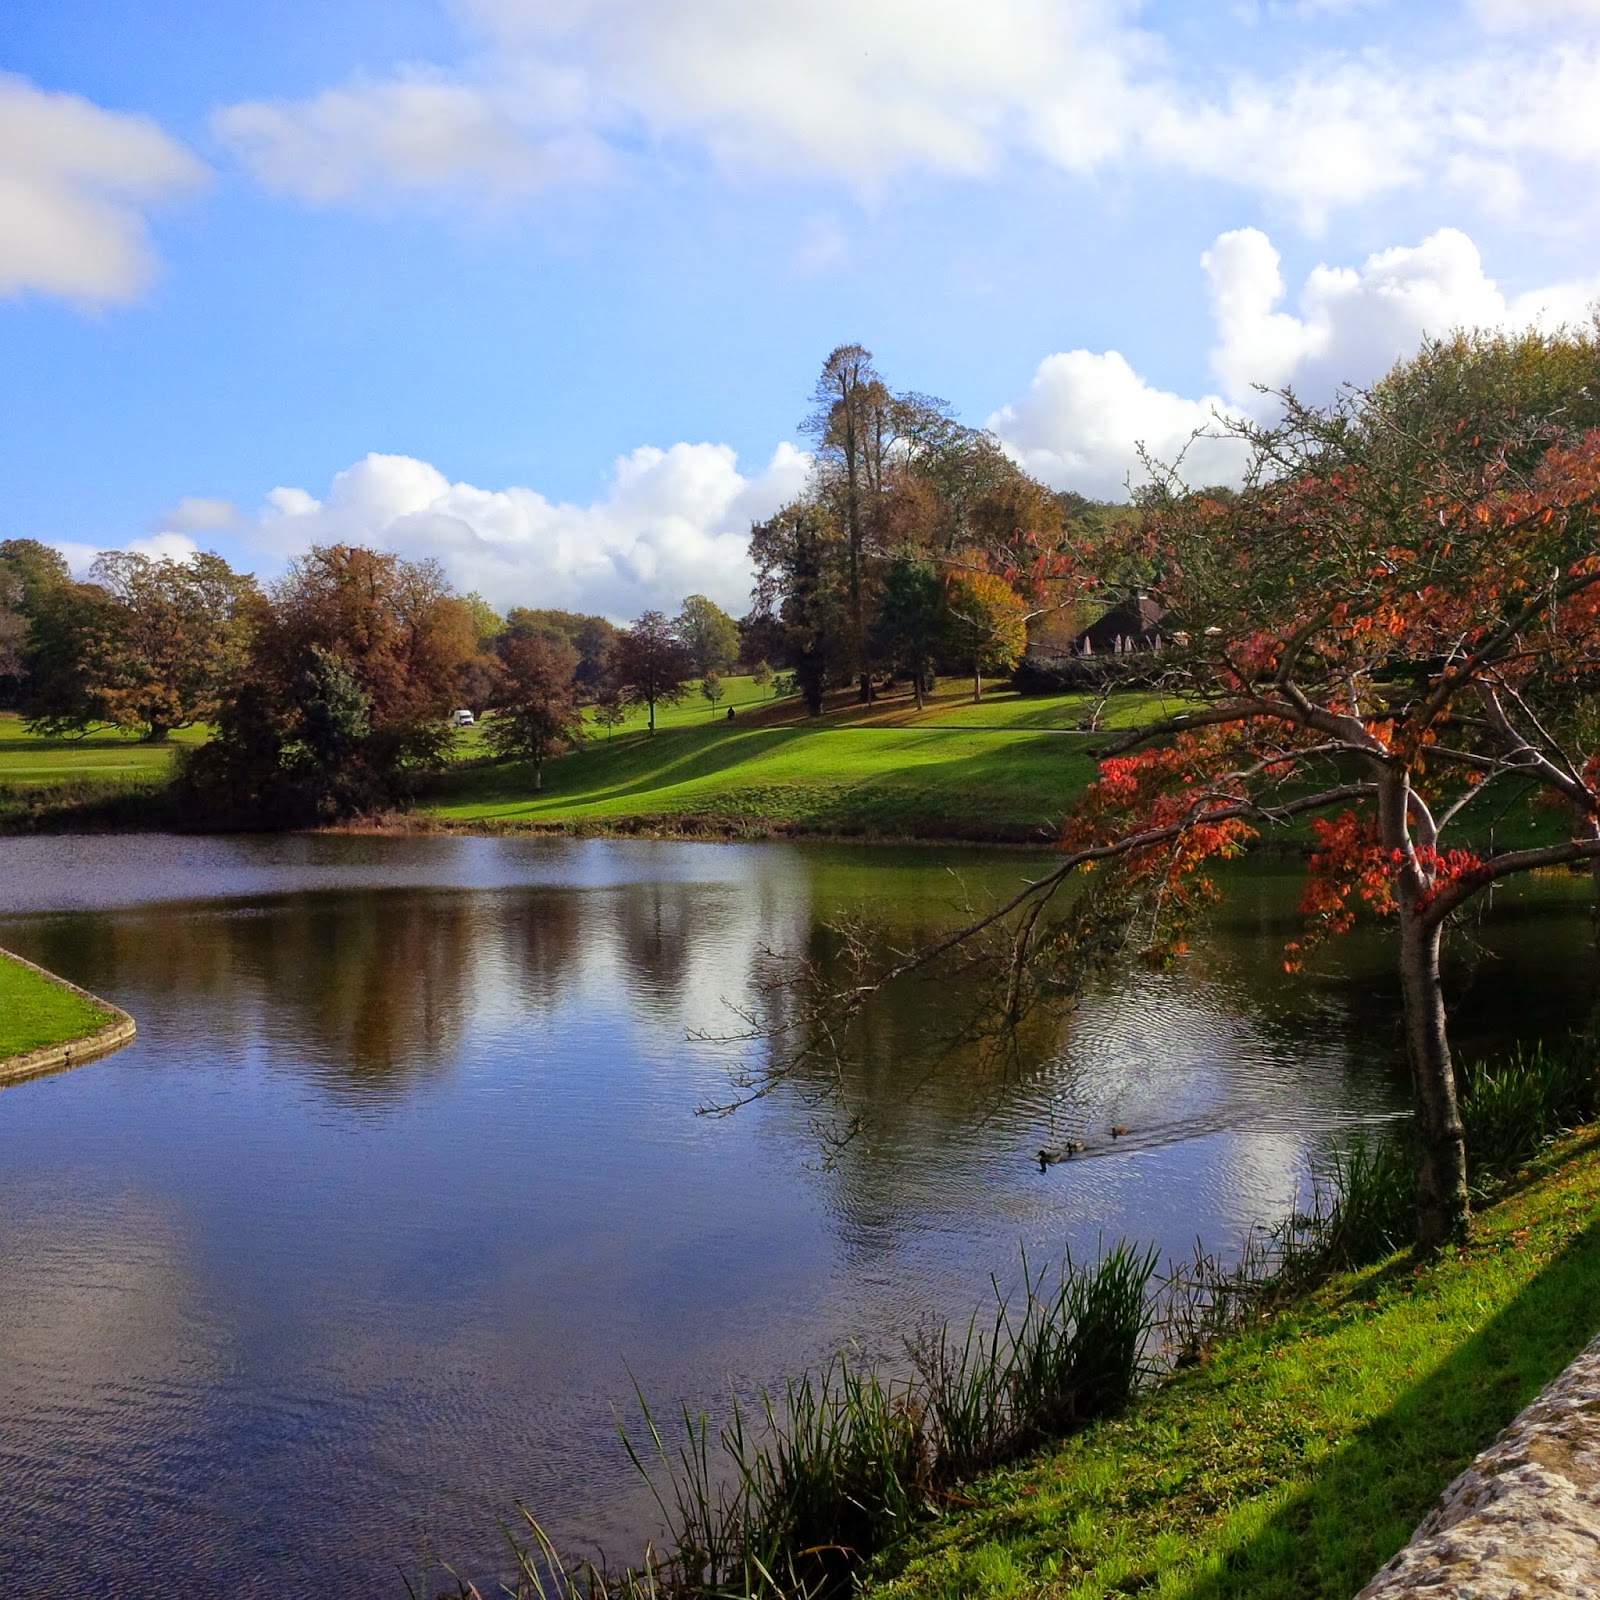 The grounds of Leeds Castle in their autumnal best